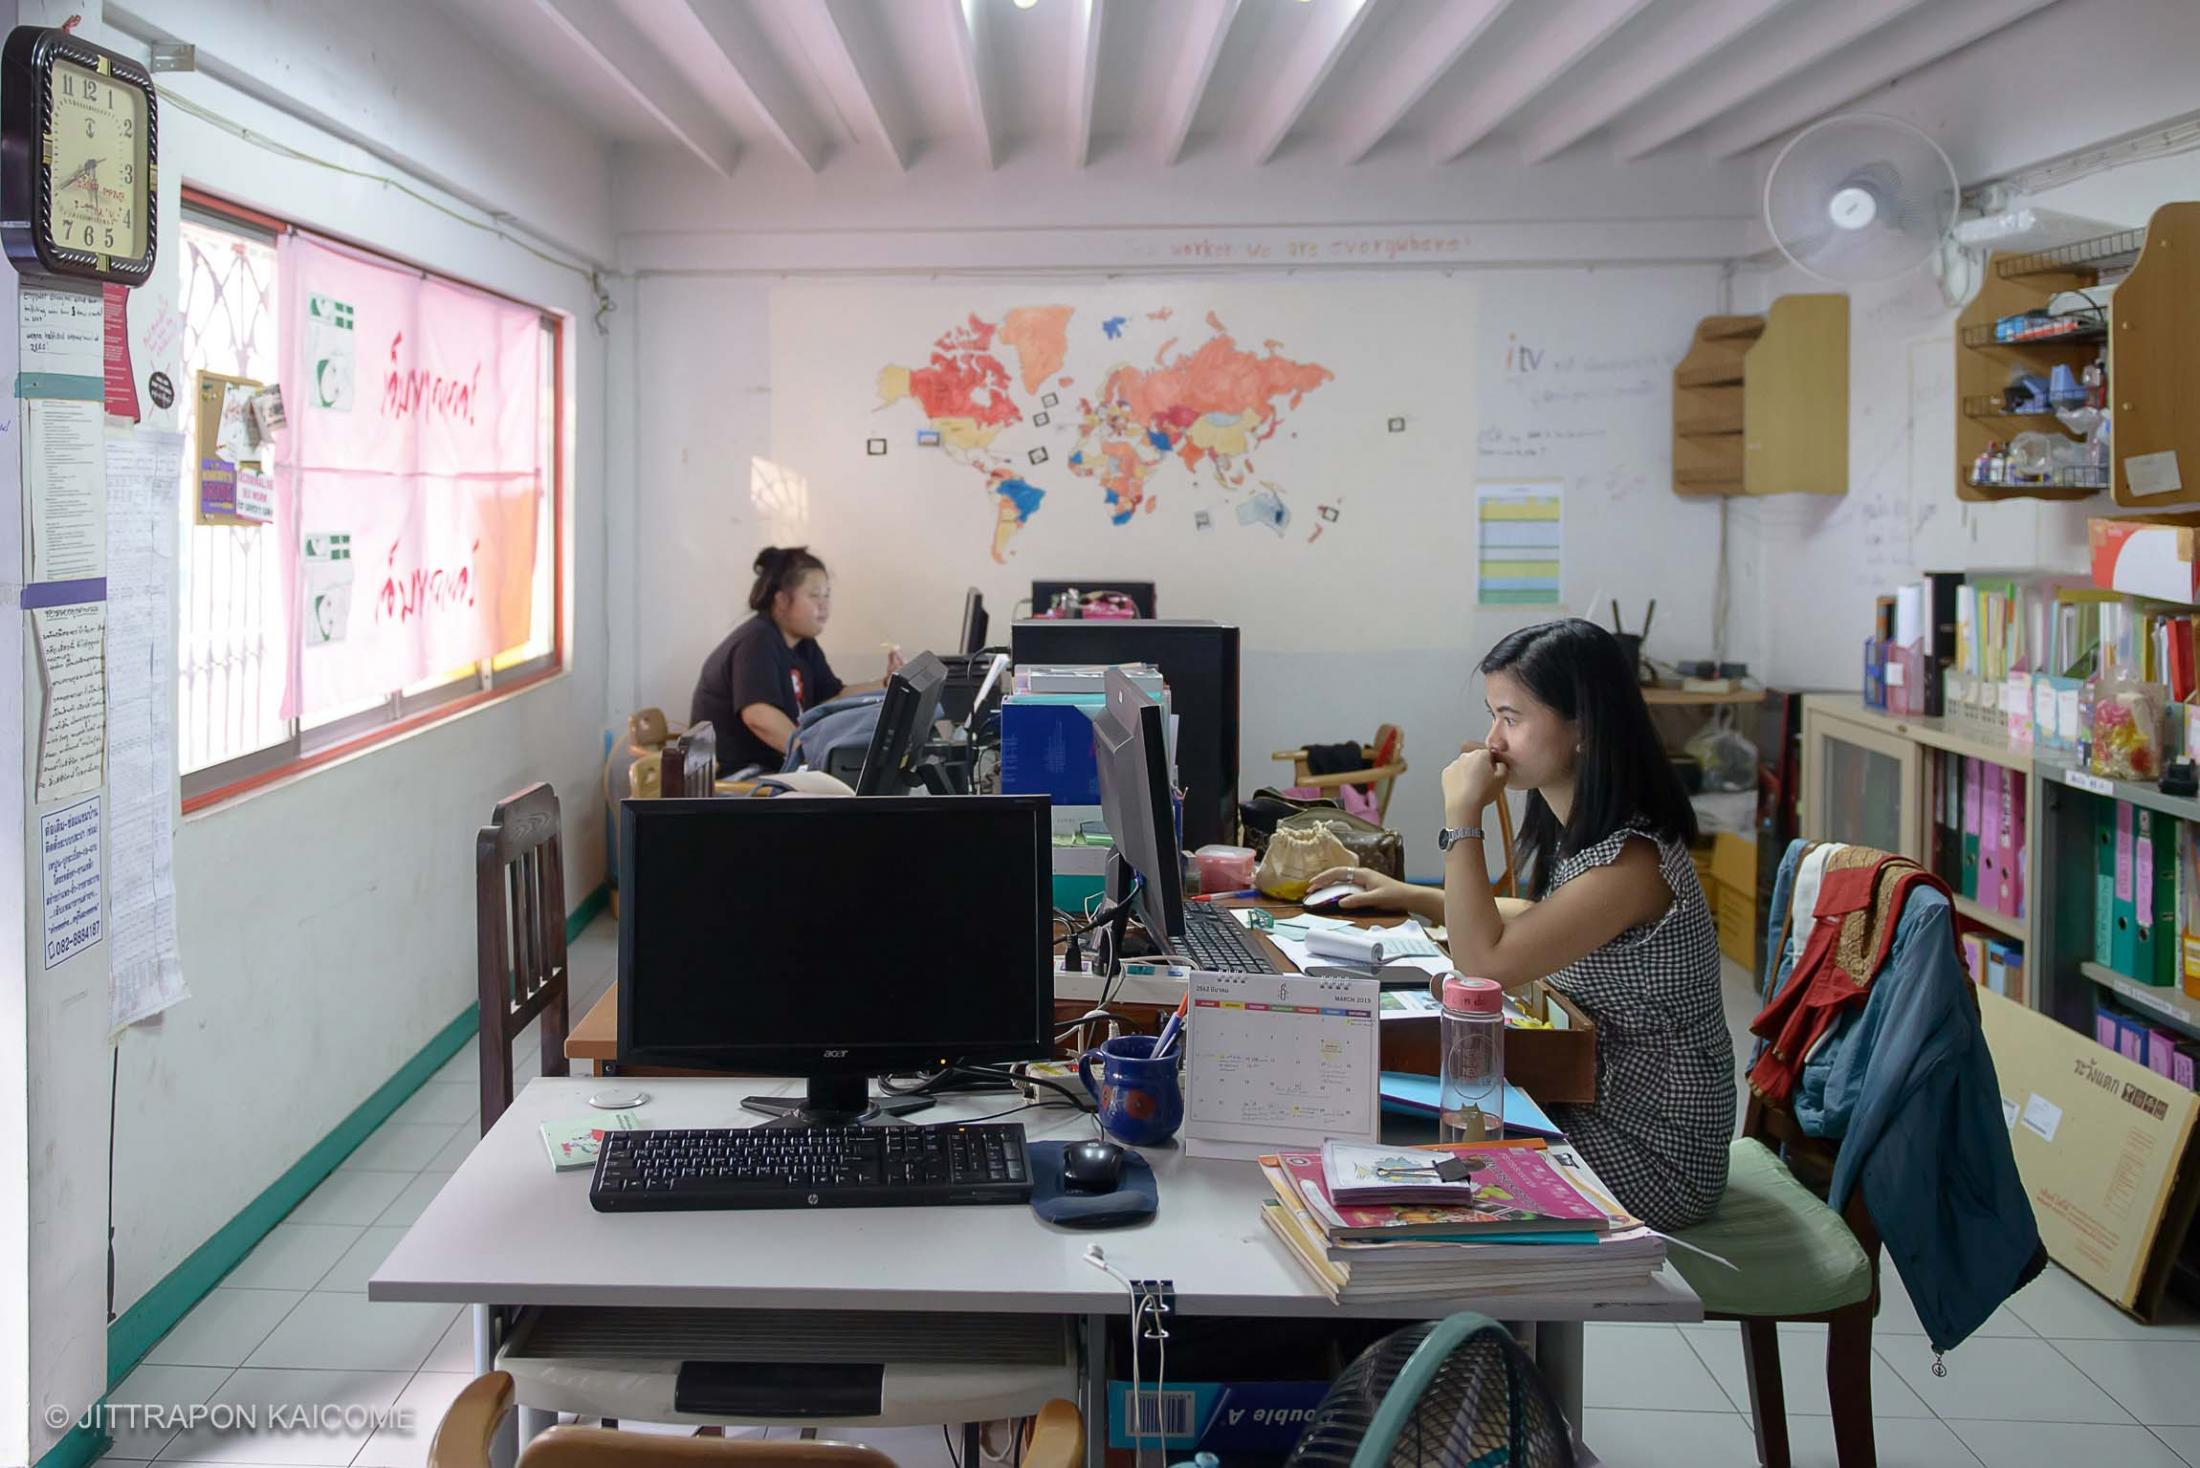 During the day, the office on the second floor of the bar is used to show NGO work of Empower and Can Do Bar. It is also used to educate a basic computer knowledge for sex workers.